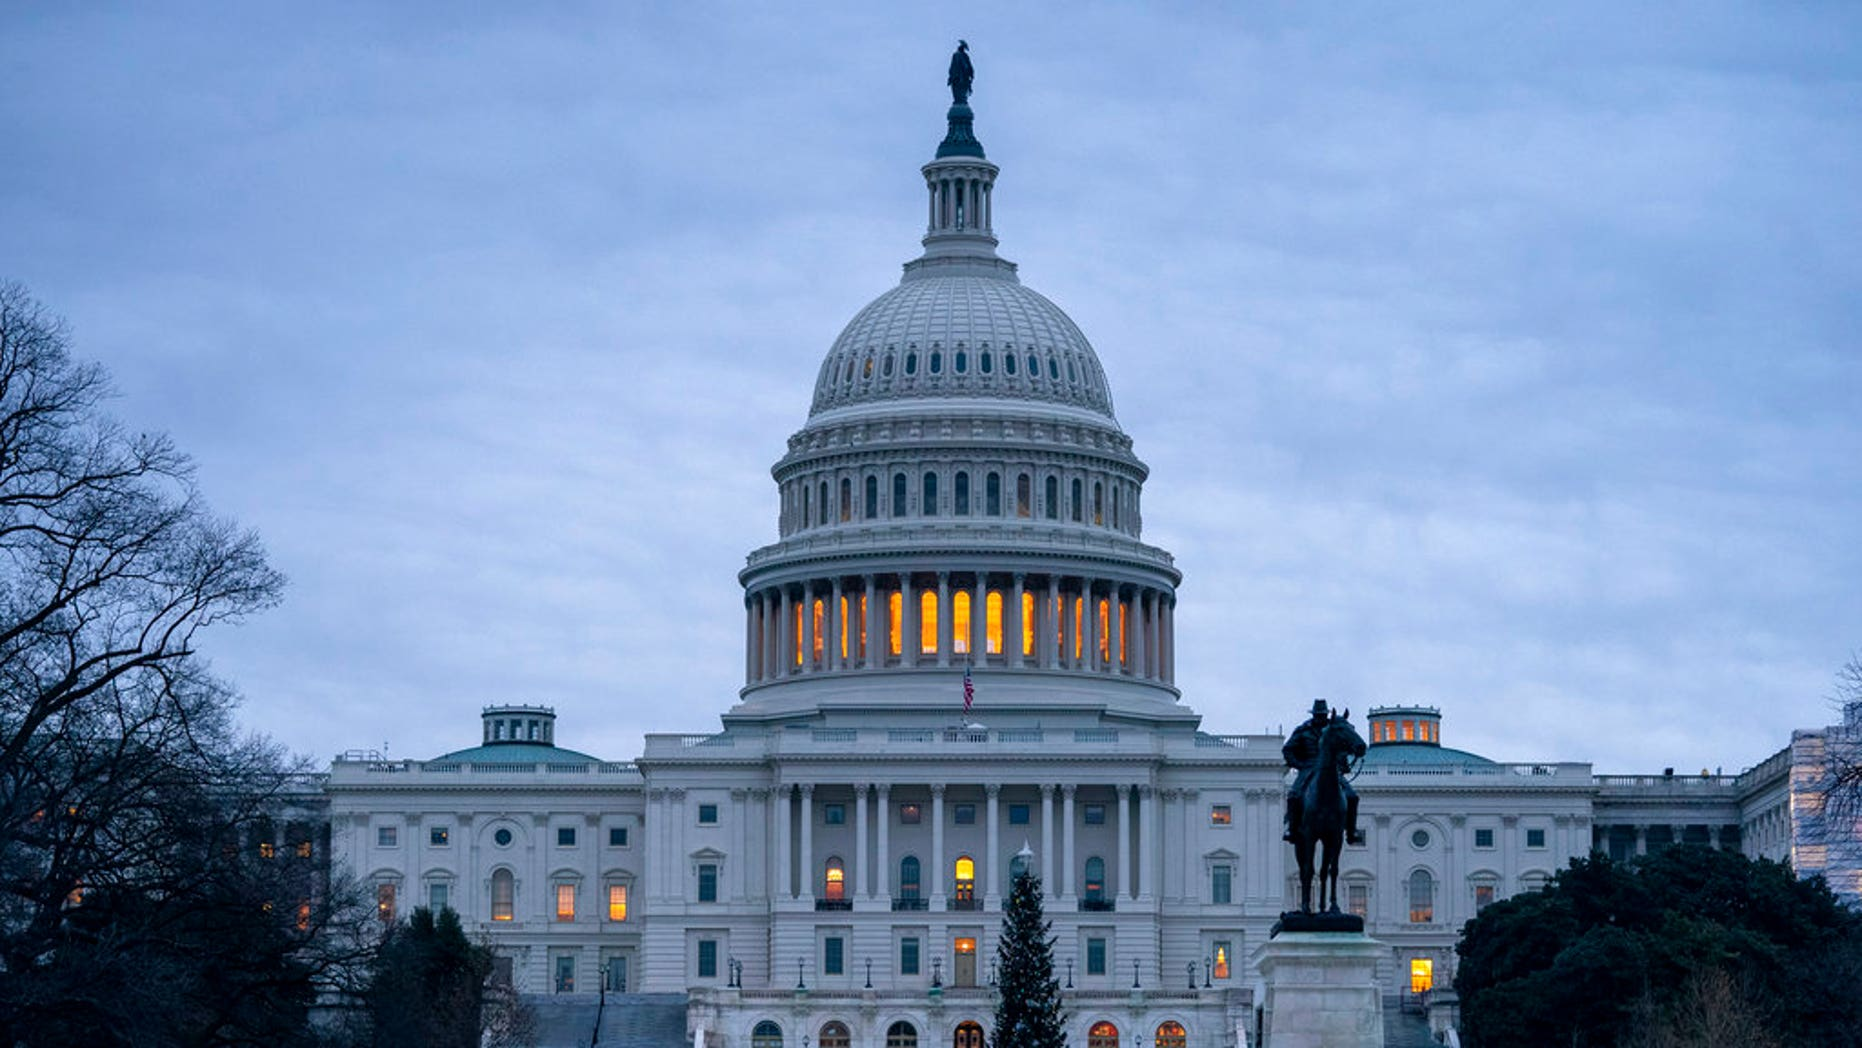 The Capitol is seen on Thursday, December 20, 2018, in Washington early morning in the gray sky. The Senate has passed a law that seeks to temporarily finance the government's last night's call for money for a border wall with Mexico. It is expected that the house will vote before the deadline on Friday, when funding for part of the government expires. Without resolution, more than 800,000 state workers would have to go on holiday or work without pay, disrupting government operations a few days before Christmas. (AP Photo / J. Scott Applewhite)